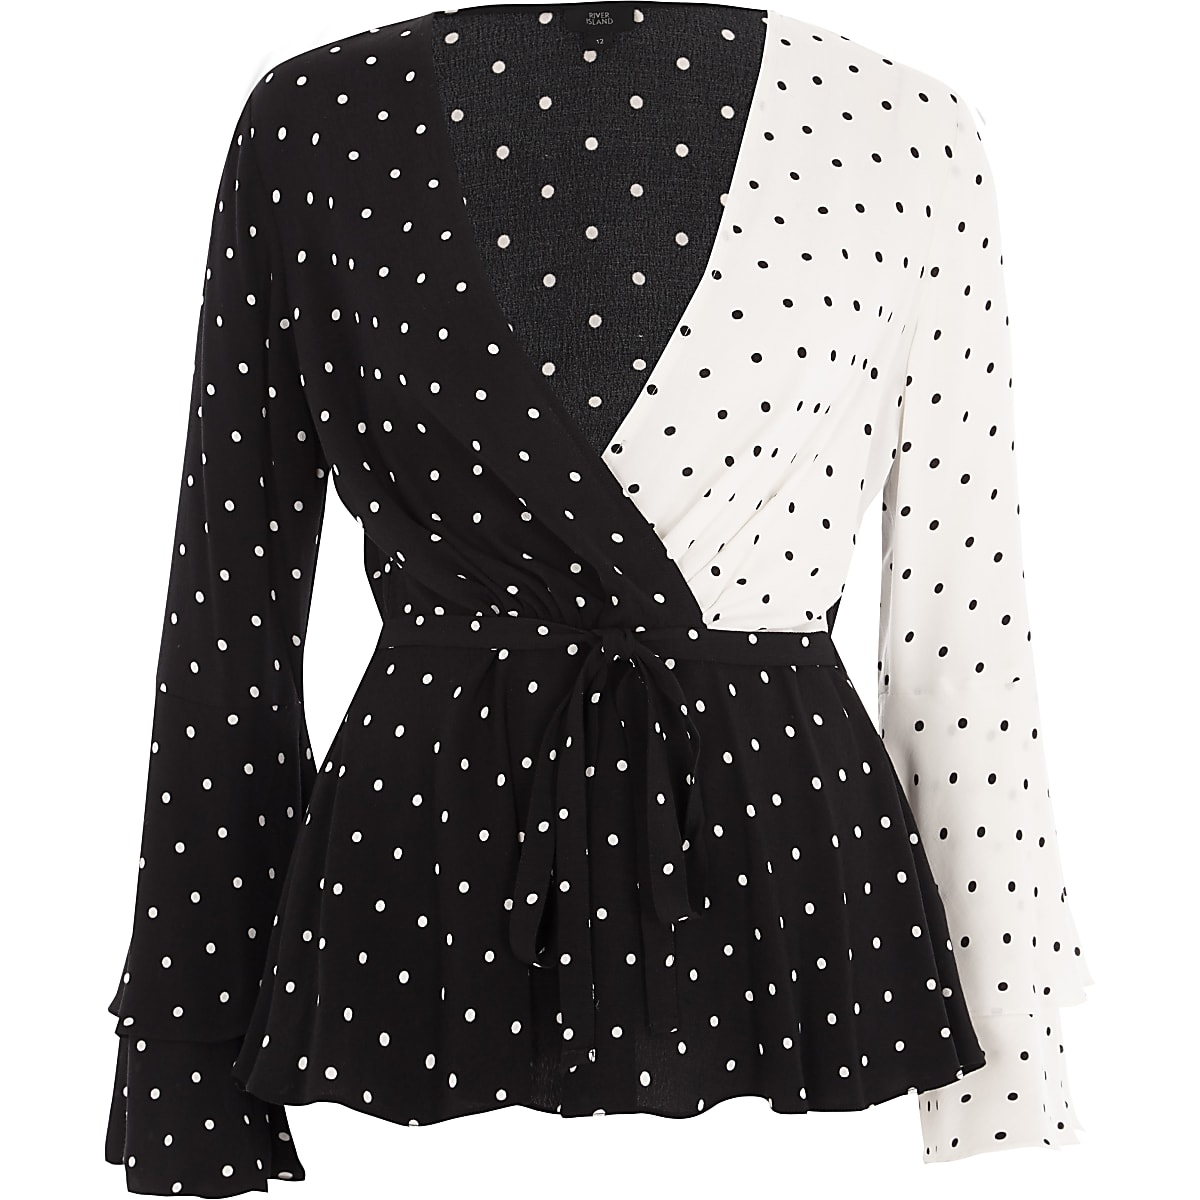 37faabb85f7276 Black block polka dot wrap tie waist blouse - Blouses - Tops - women